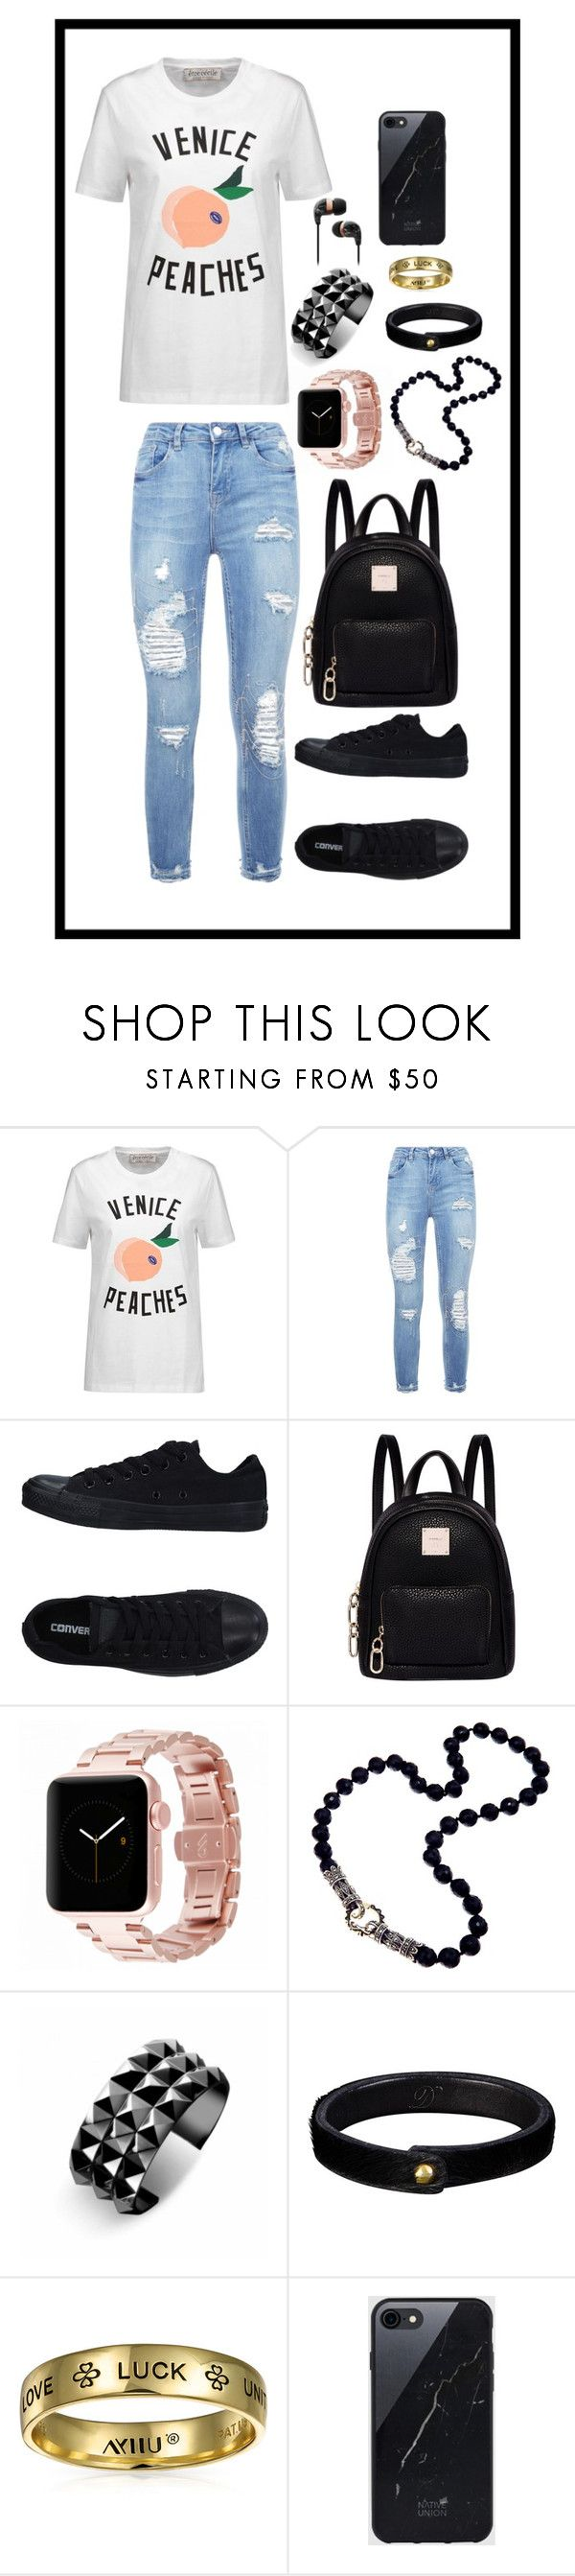 """Untitled 242"" by ahmady ❤ liked on Polyvore featuring Être Cécile, Converse, Fiorelli, Waterford, Bling Jewelry and Sefton"